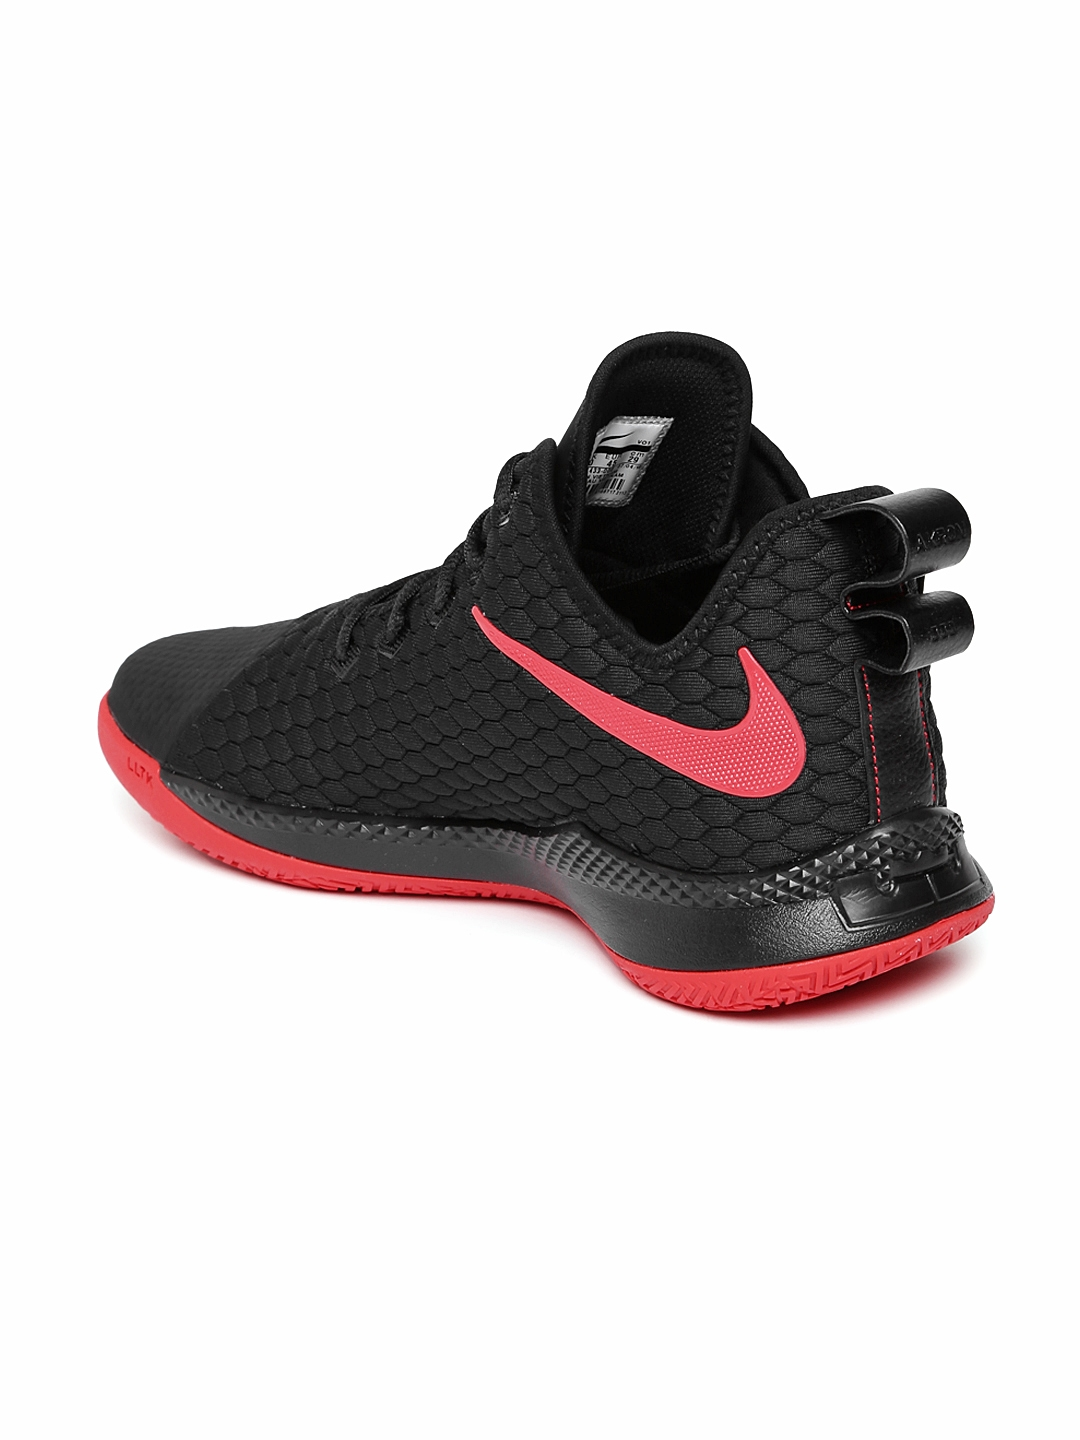 c54dc6a5d2d2 Buy Nike Men Black Lebron Witness III Basketball Shoes - Sports ...